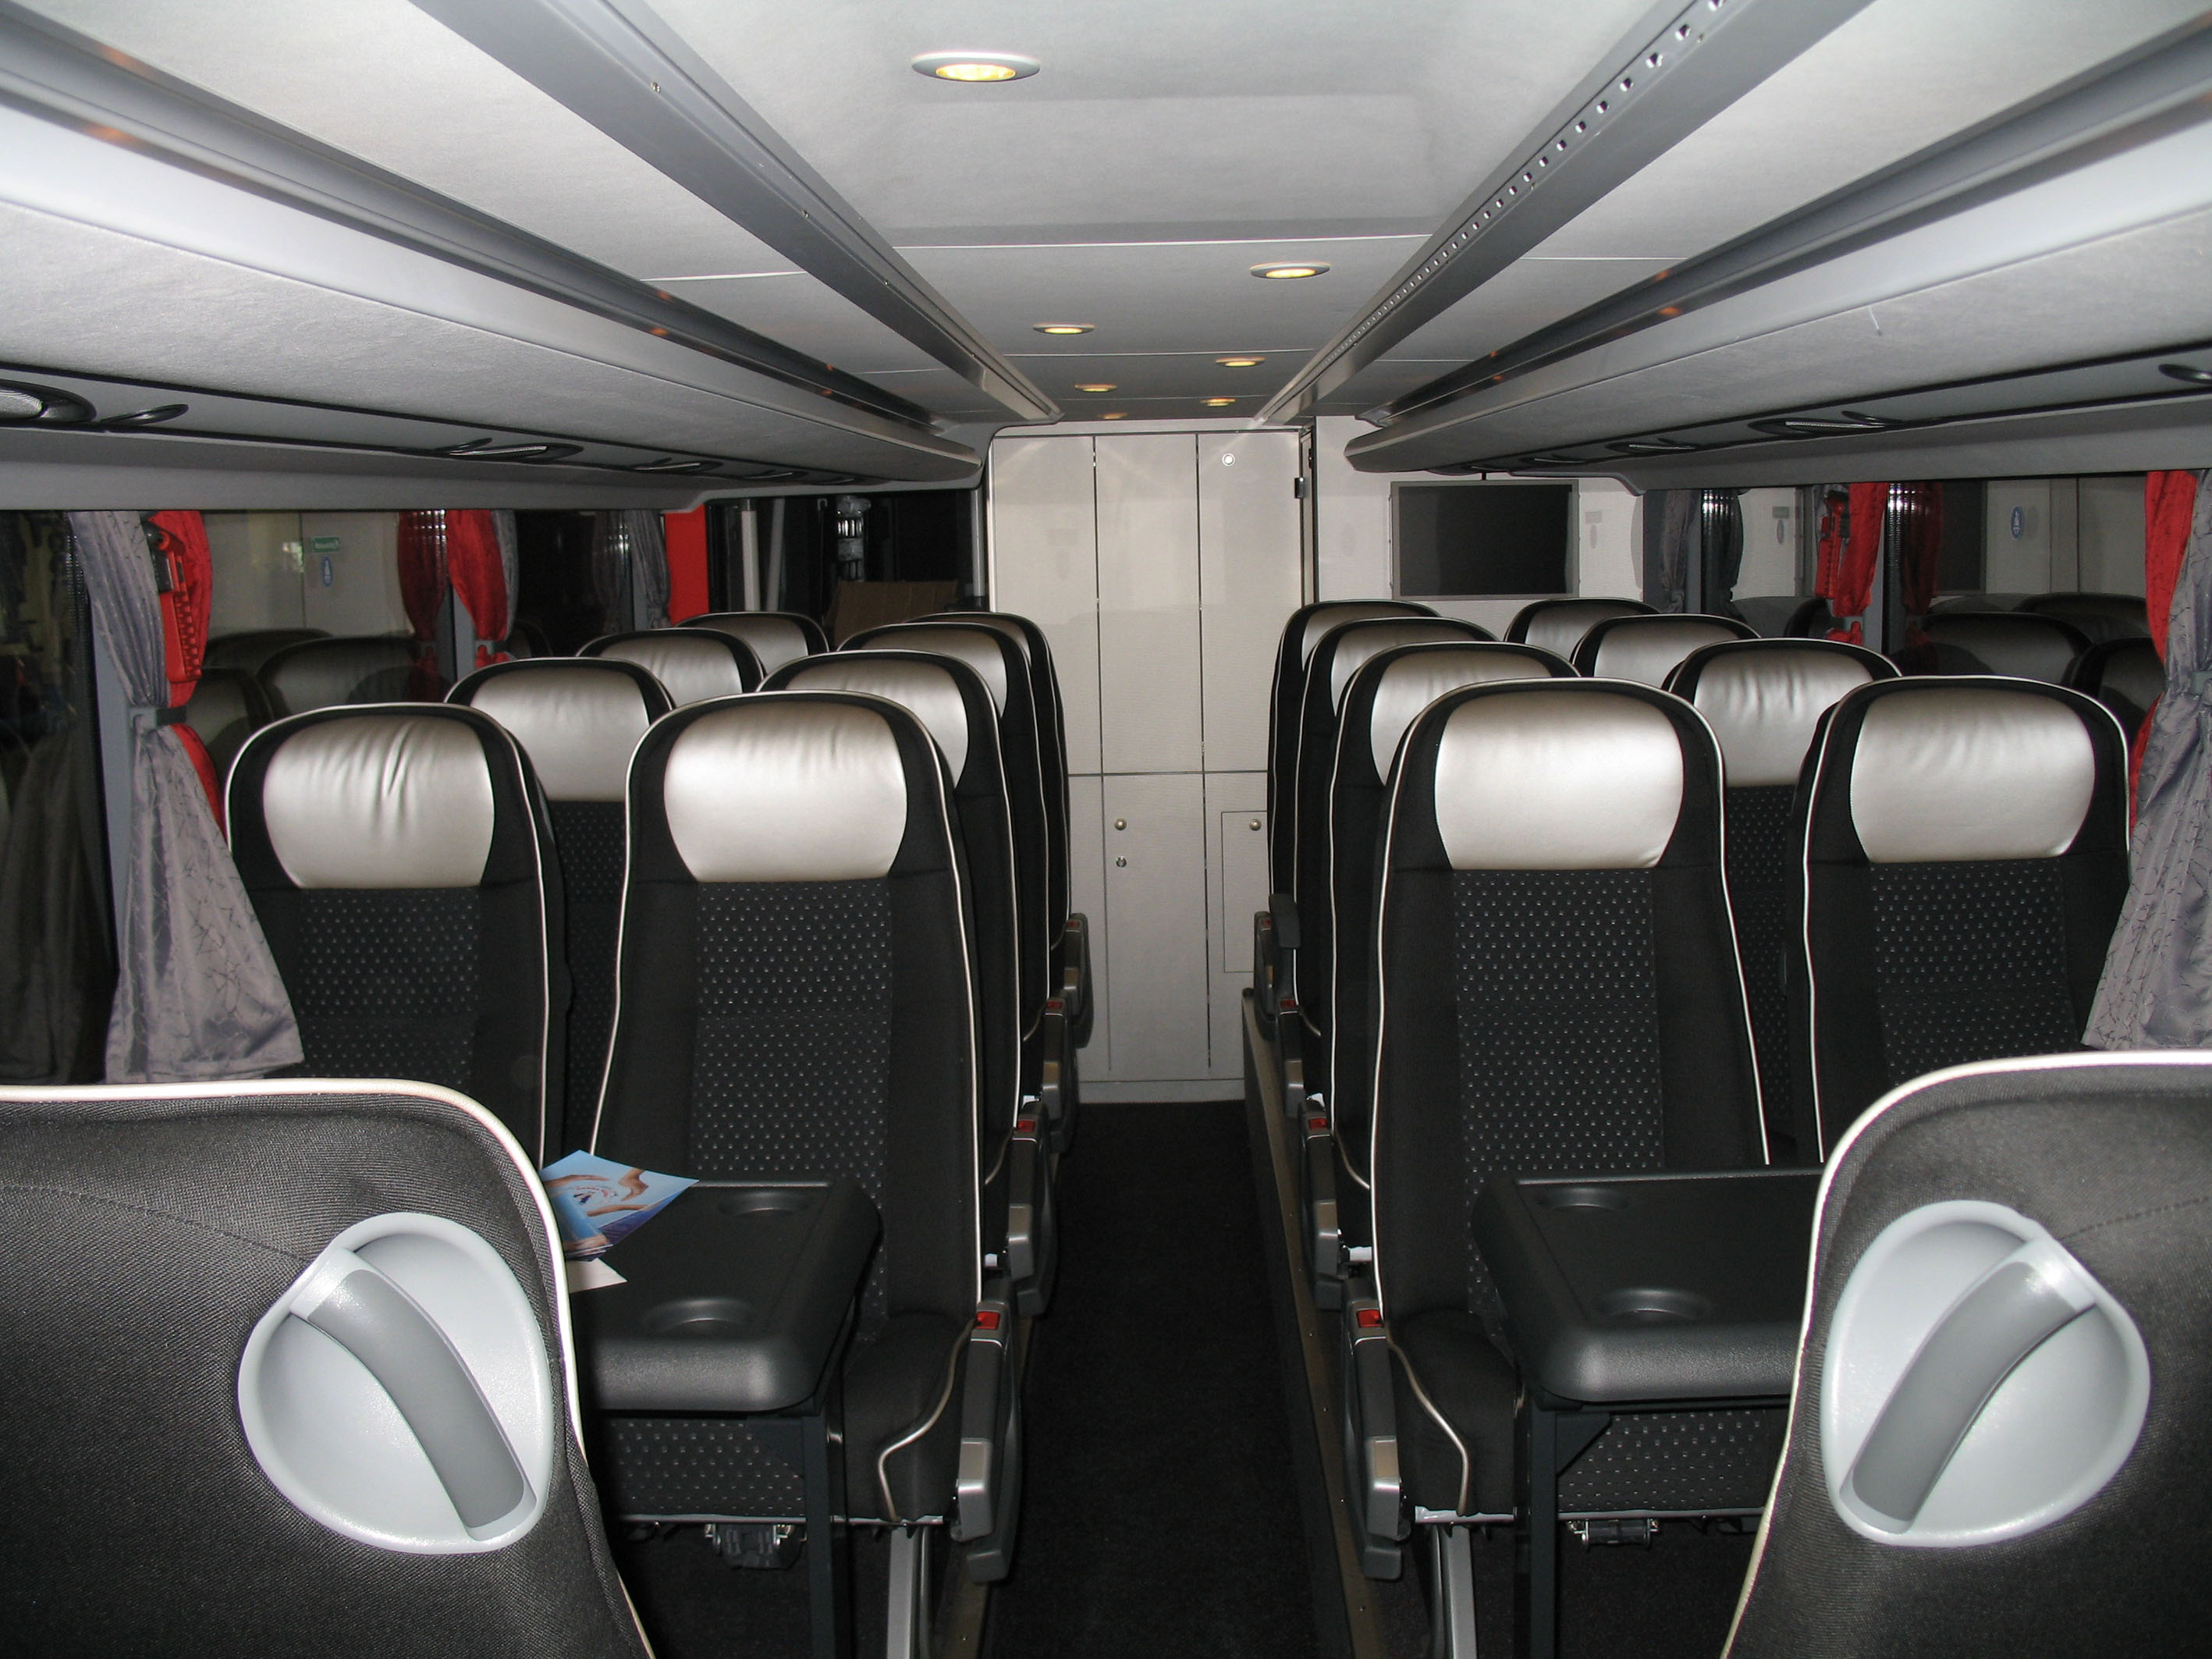 File:Setra S 431 DT - interior rear.jpg